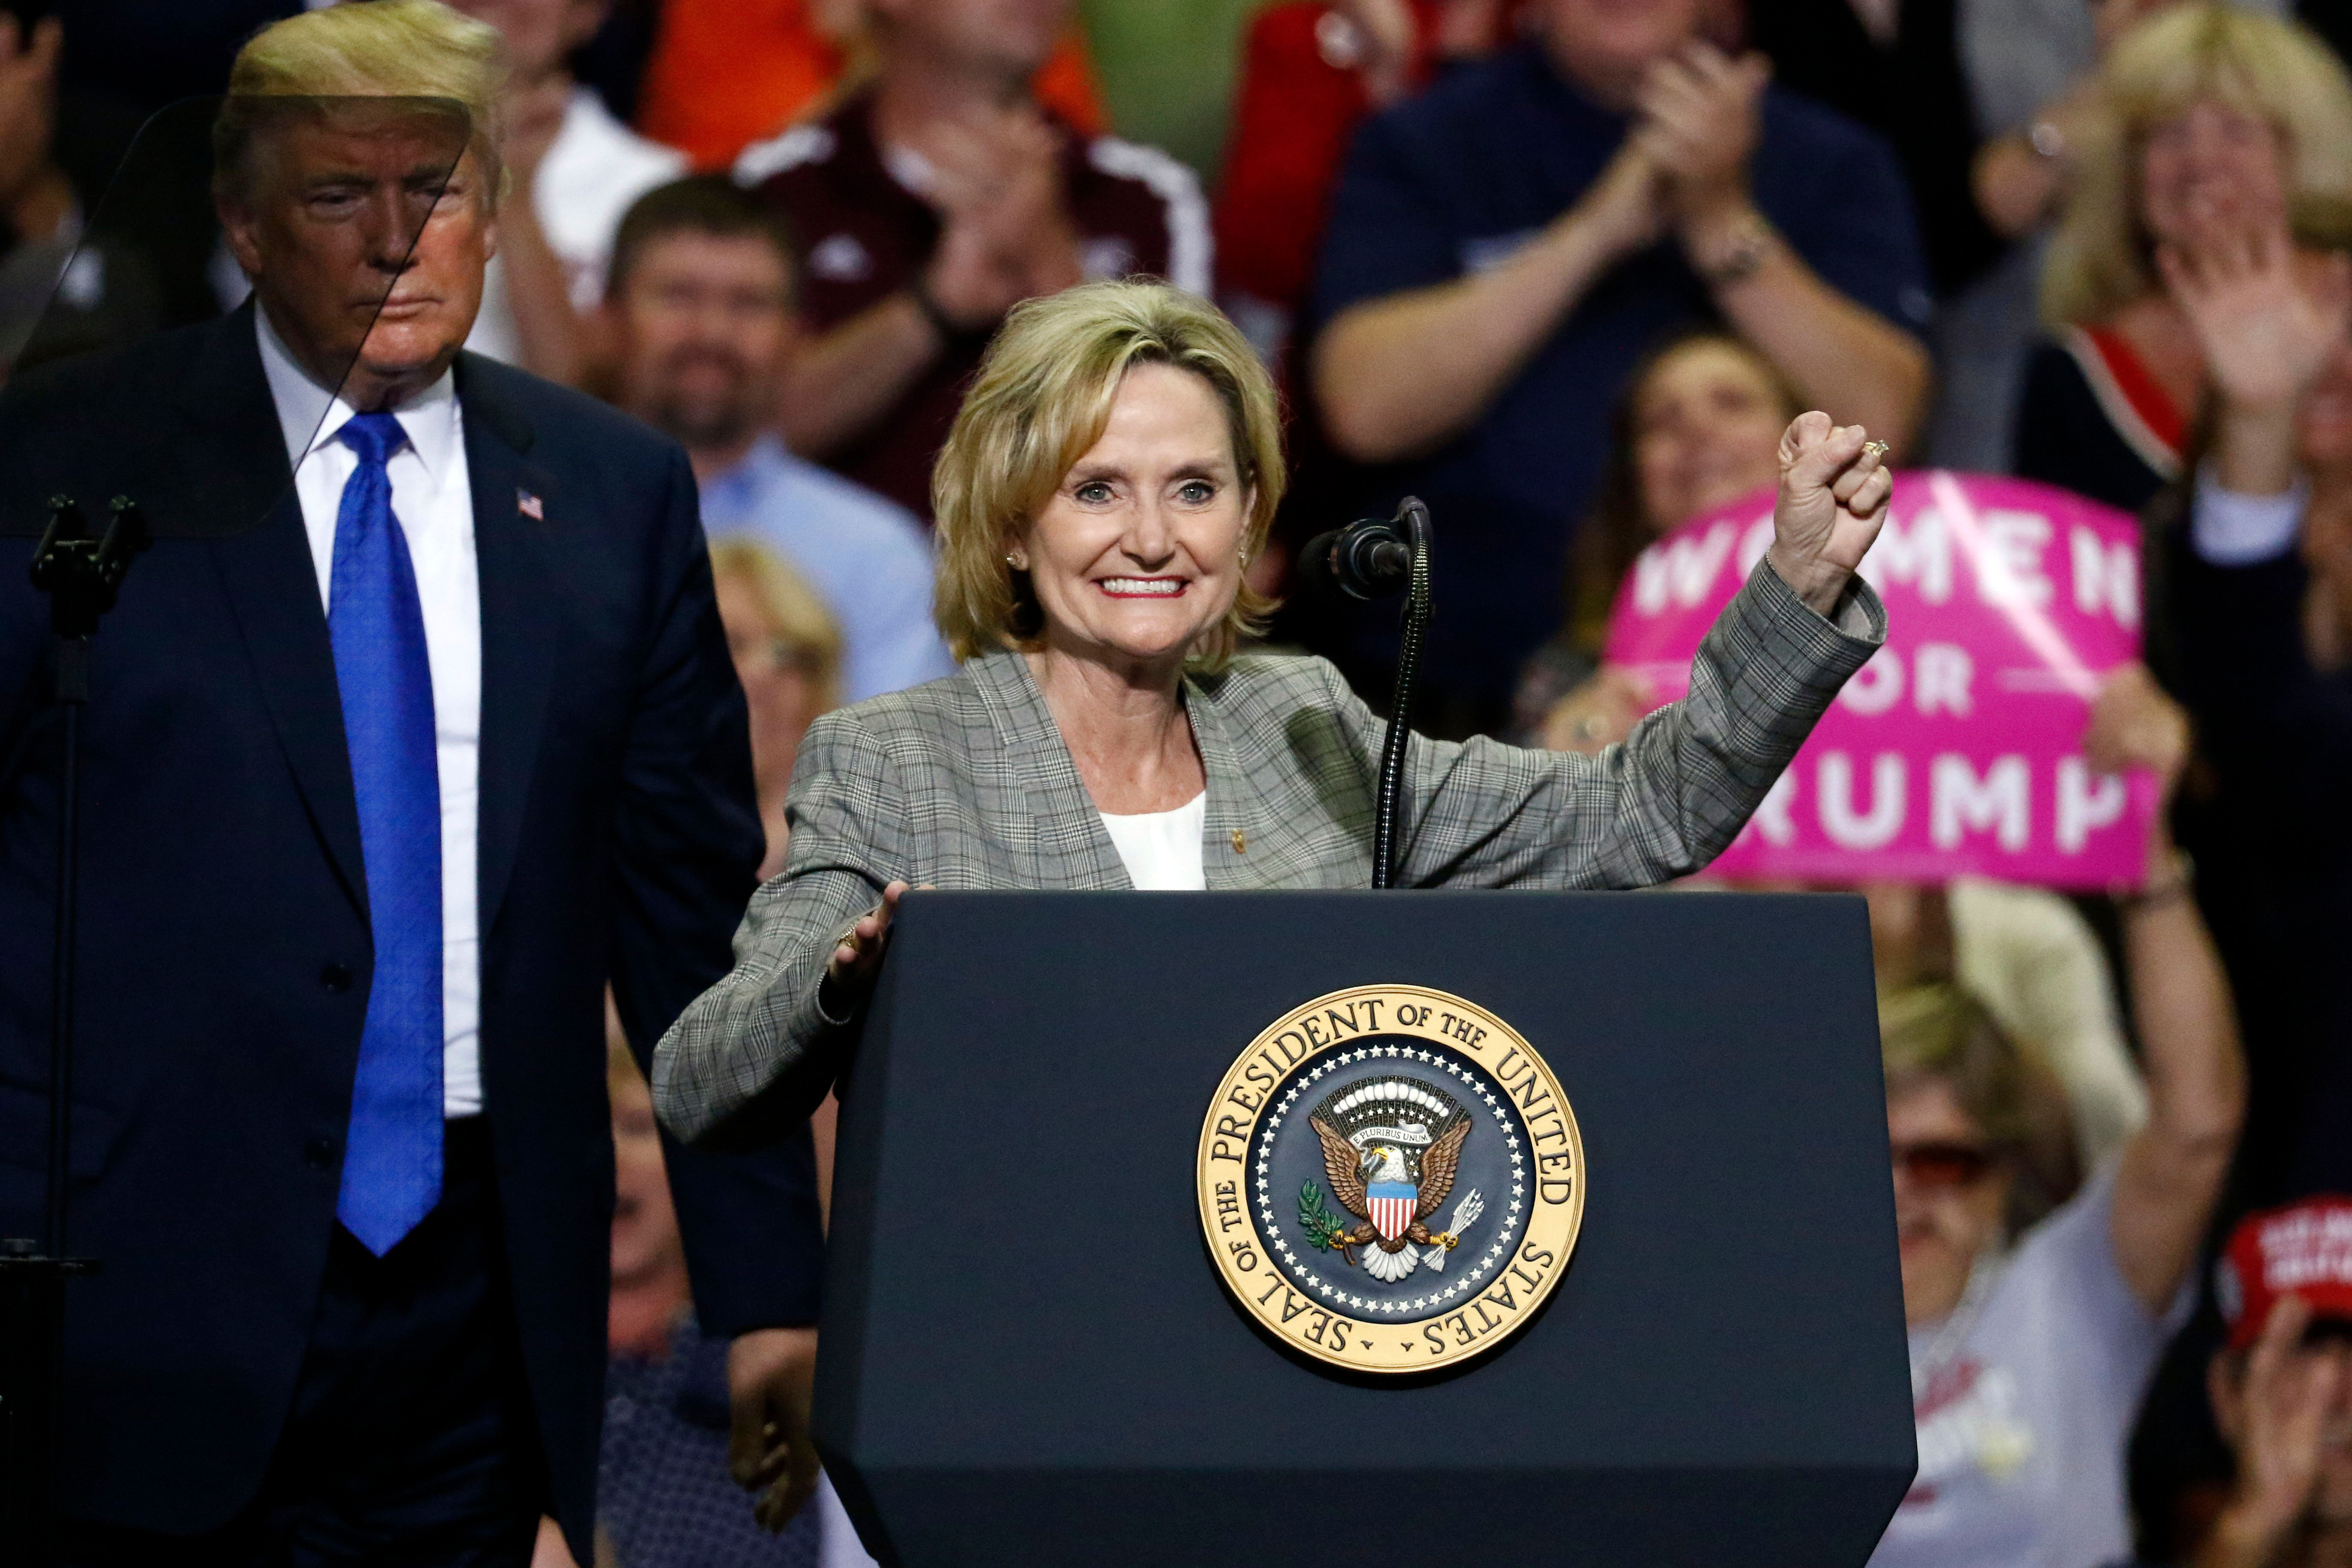 FILE - In this Oct. 2, 2018 photograph, President Donald Trump stands in the shadows while U.S. Sen. Cindy Hyde-Smith, R-Miss., encourages the crowd at a rally in Southaven, Miss. Hyde-Smith is running for the final two years of the term of former Republican U.S. Sen. Thad Cochran, who retired last year and faces three opponents in this non-partisan race, including Mike Espy, a former congressman and former U.S. agriculture secretary. (AP Photo/Rogelio V. Solis)